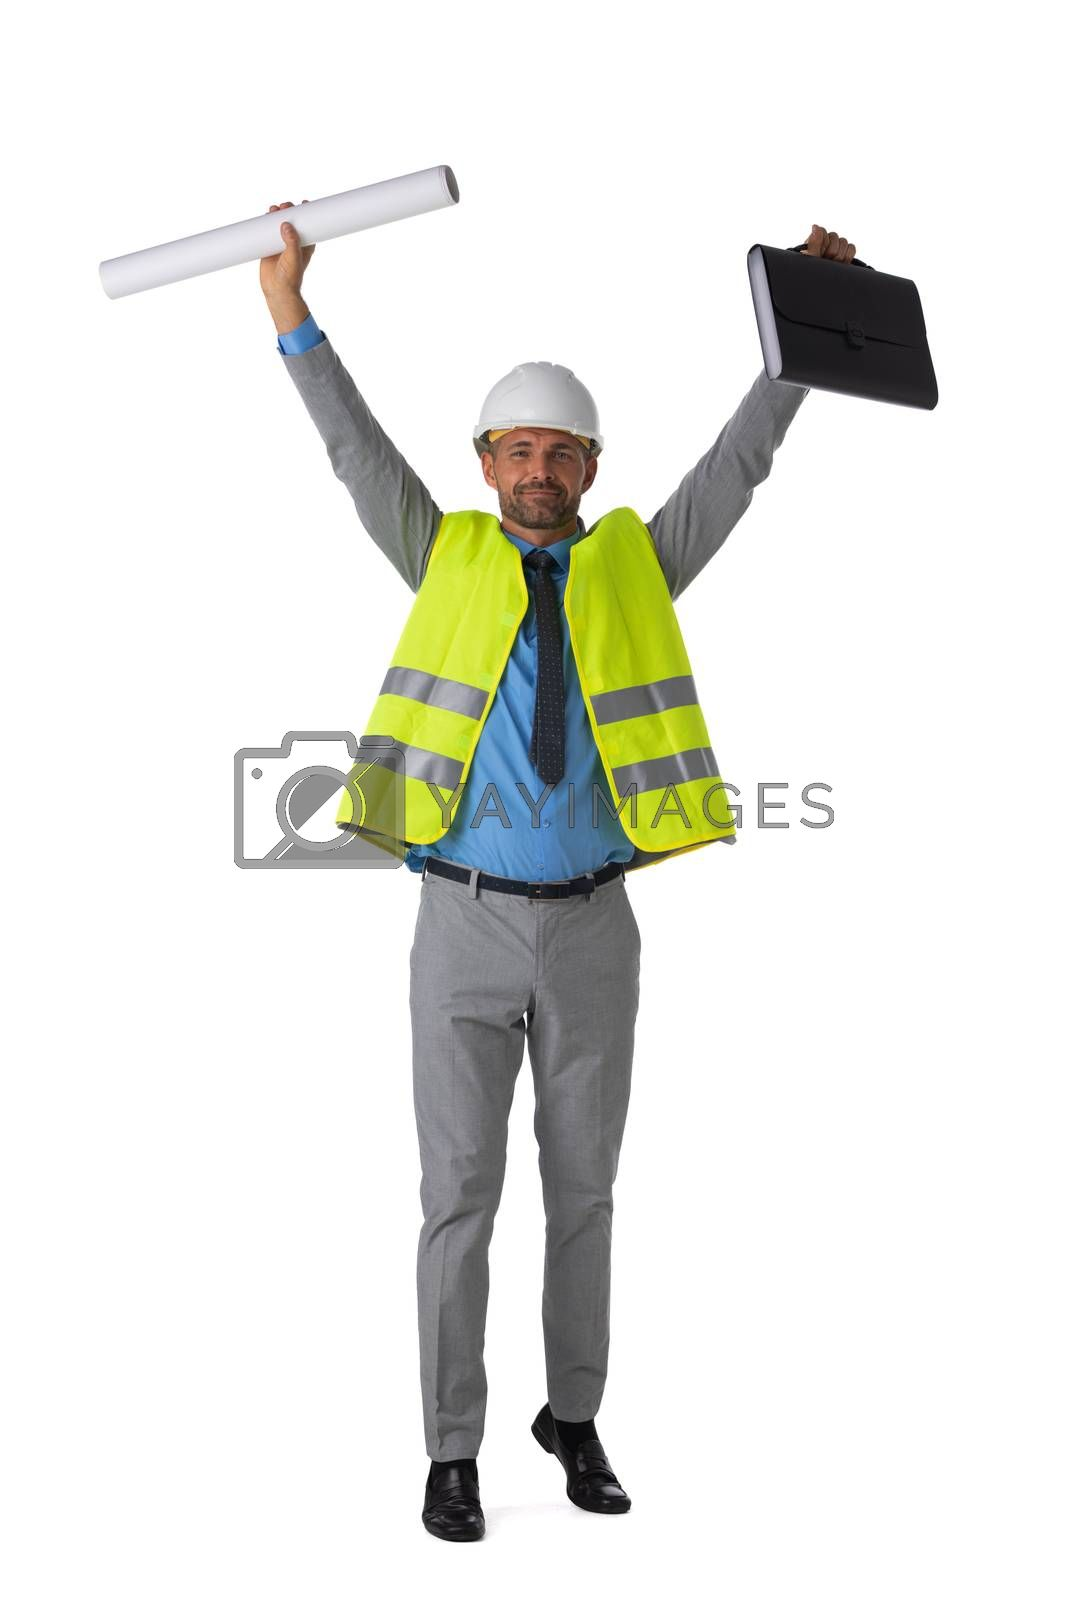 Male engeneer architect foreman in white hardhat and safety vest winner with raised arms isolated on white background full length studio portrait